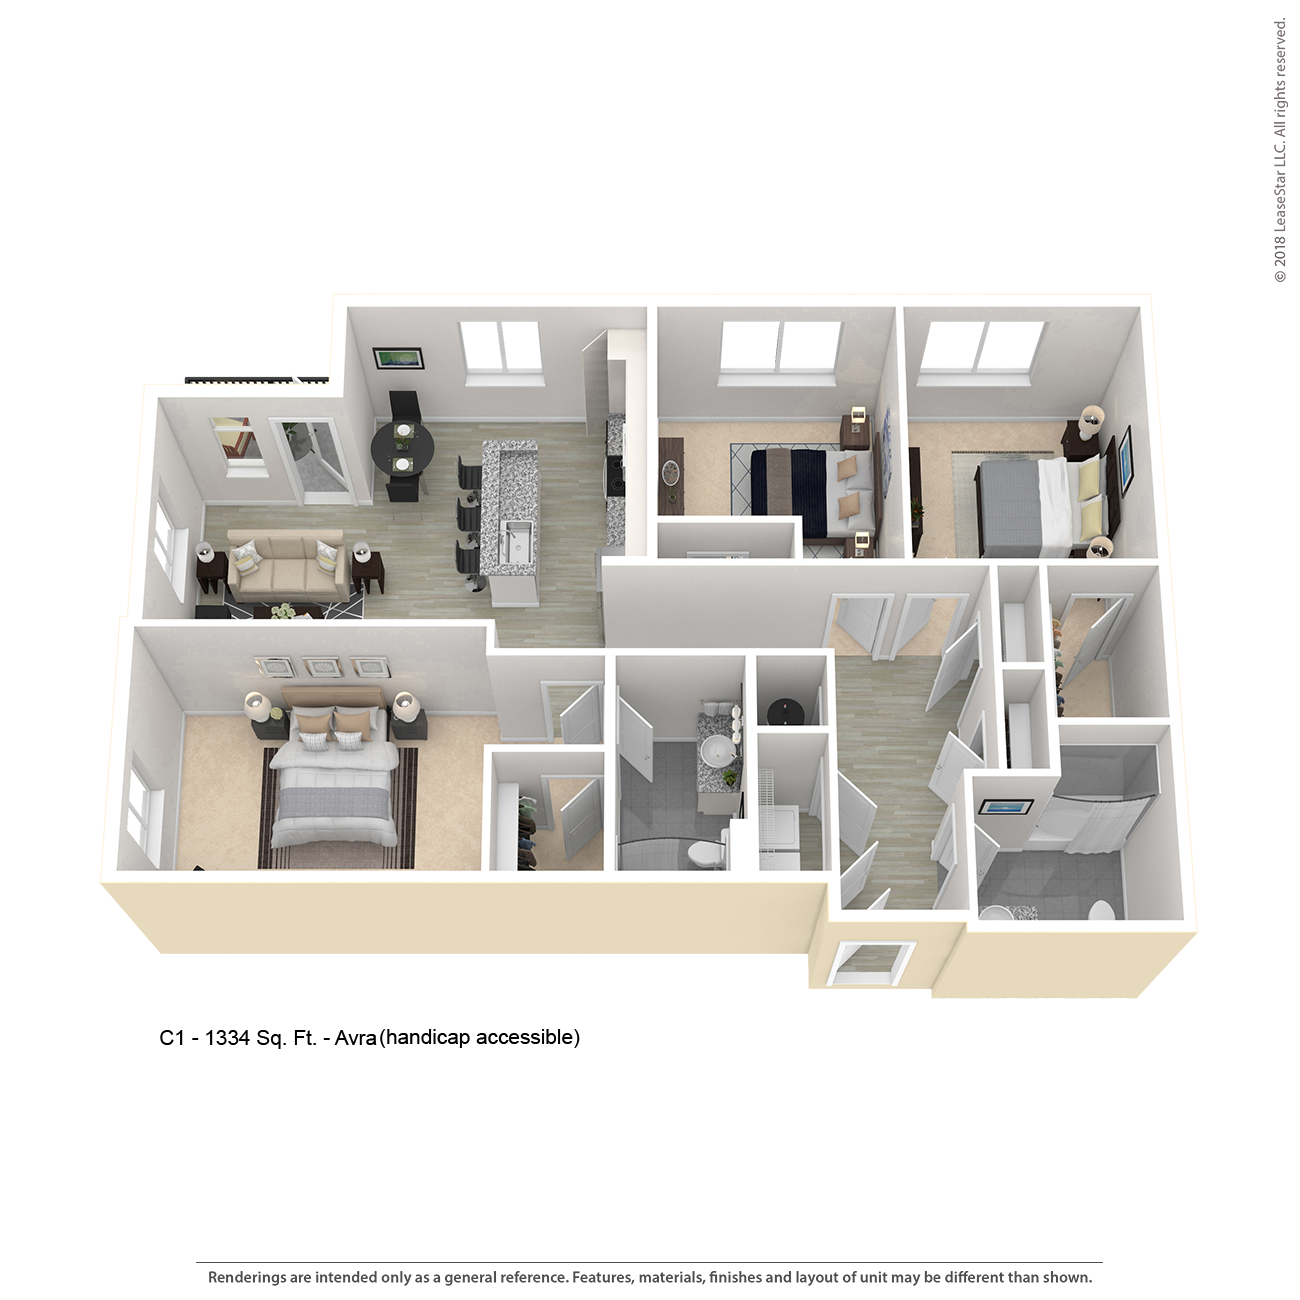 Center West Apartments Baltimore Md: AVRA C1 Three Bedrooms Apartment Floor Plan